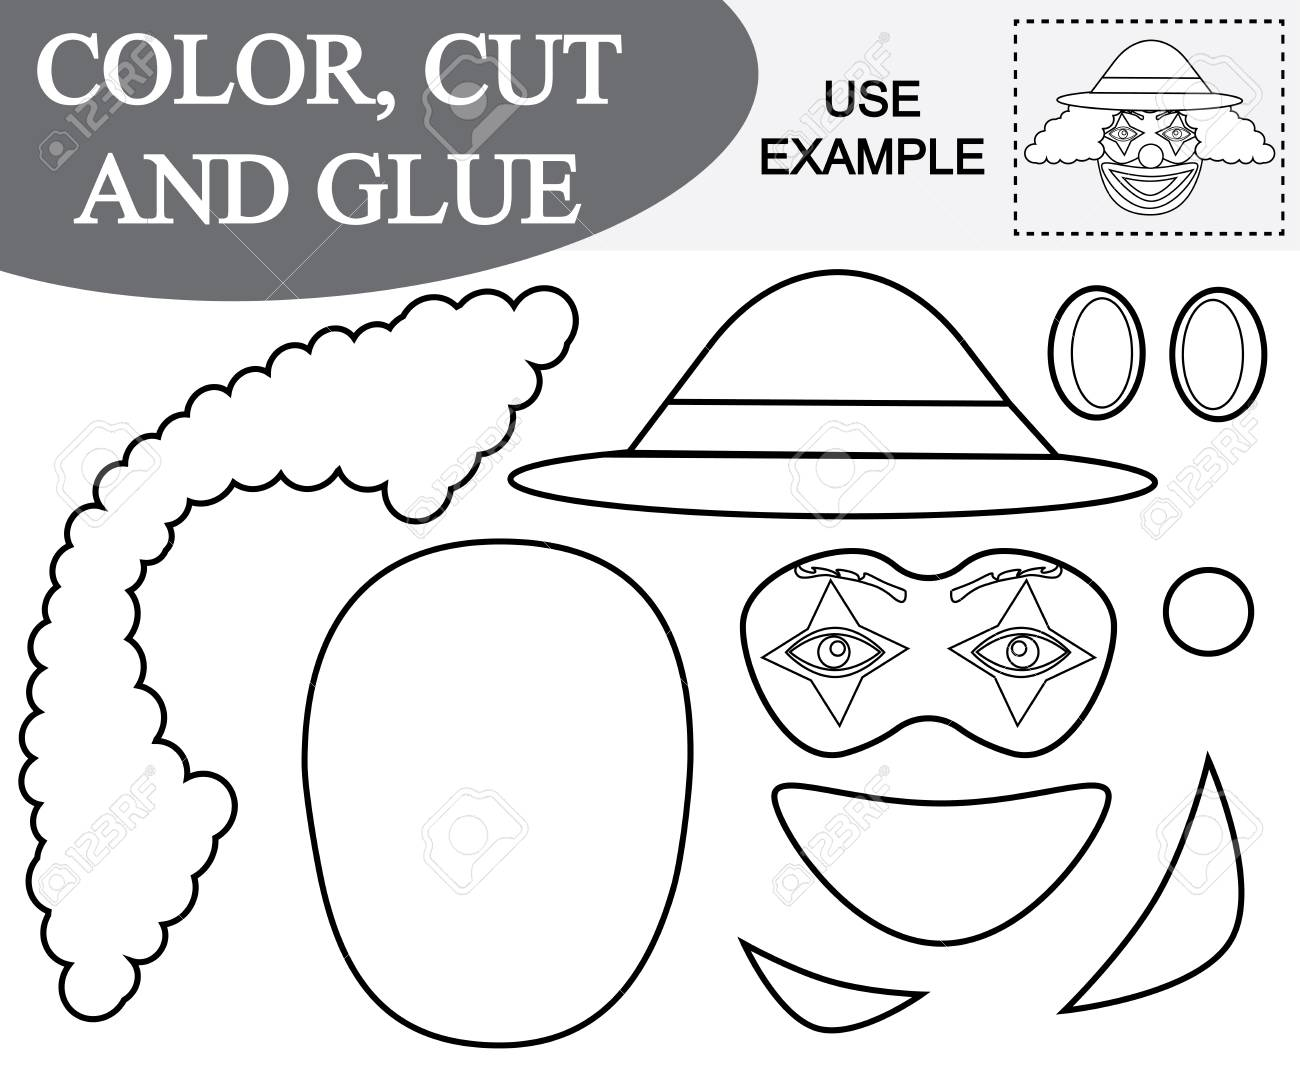 Color Cut And Paste The Image Of Face Of Clown Game For Children